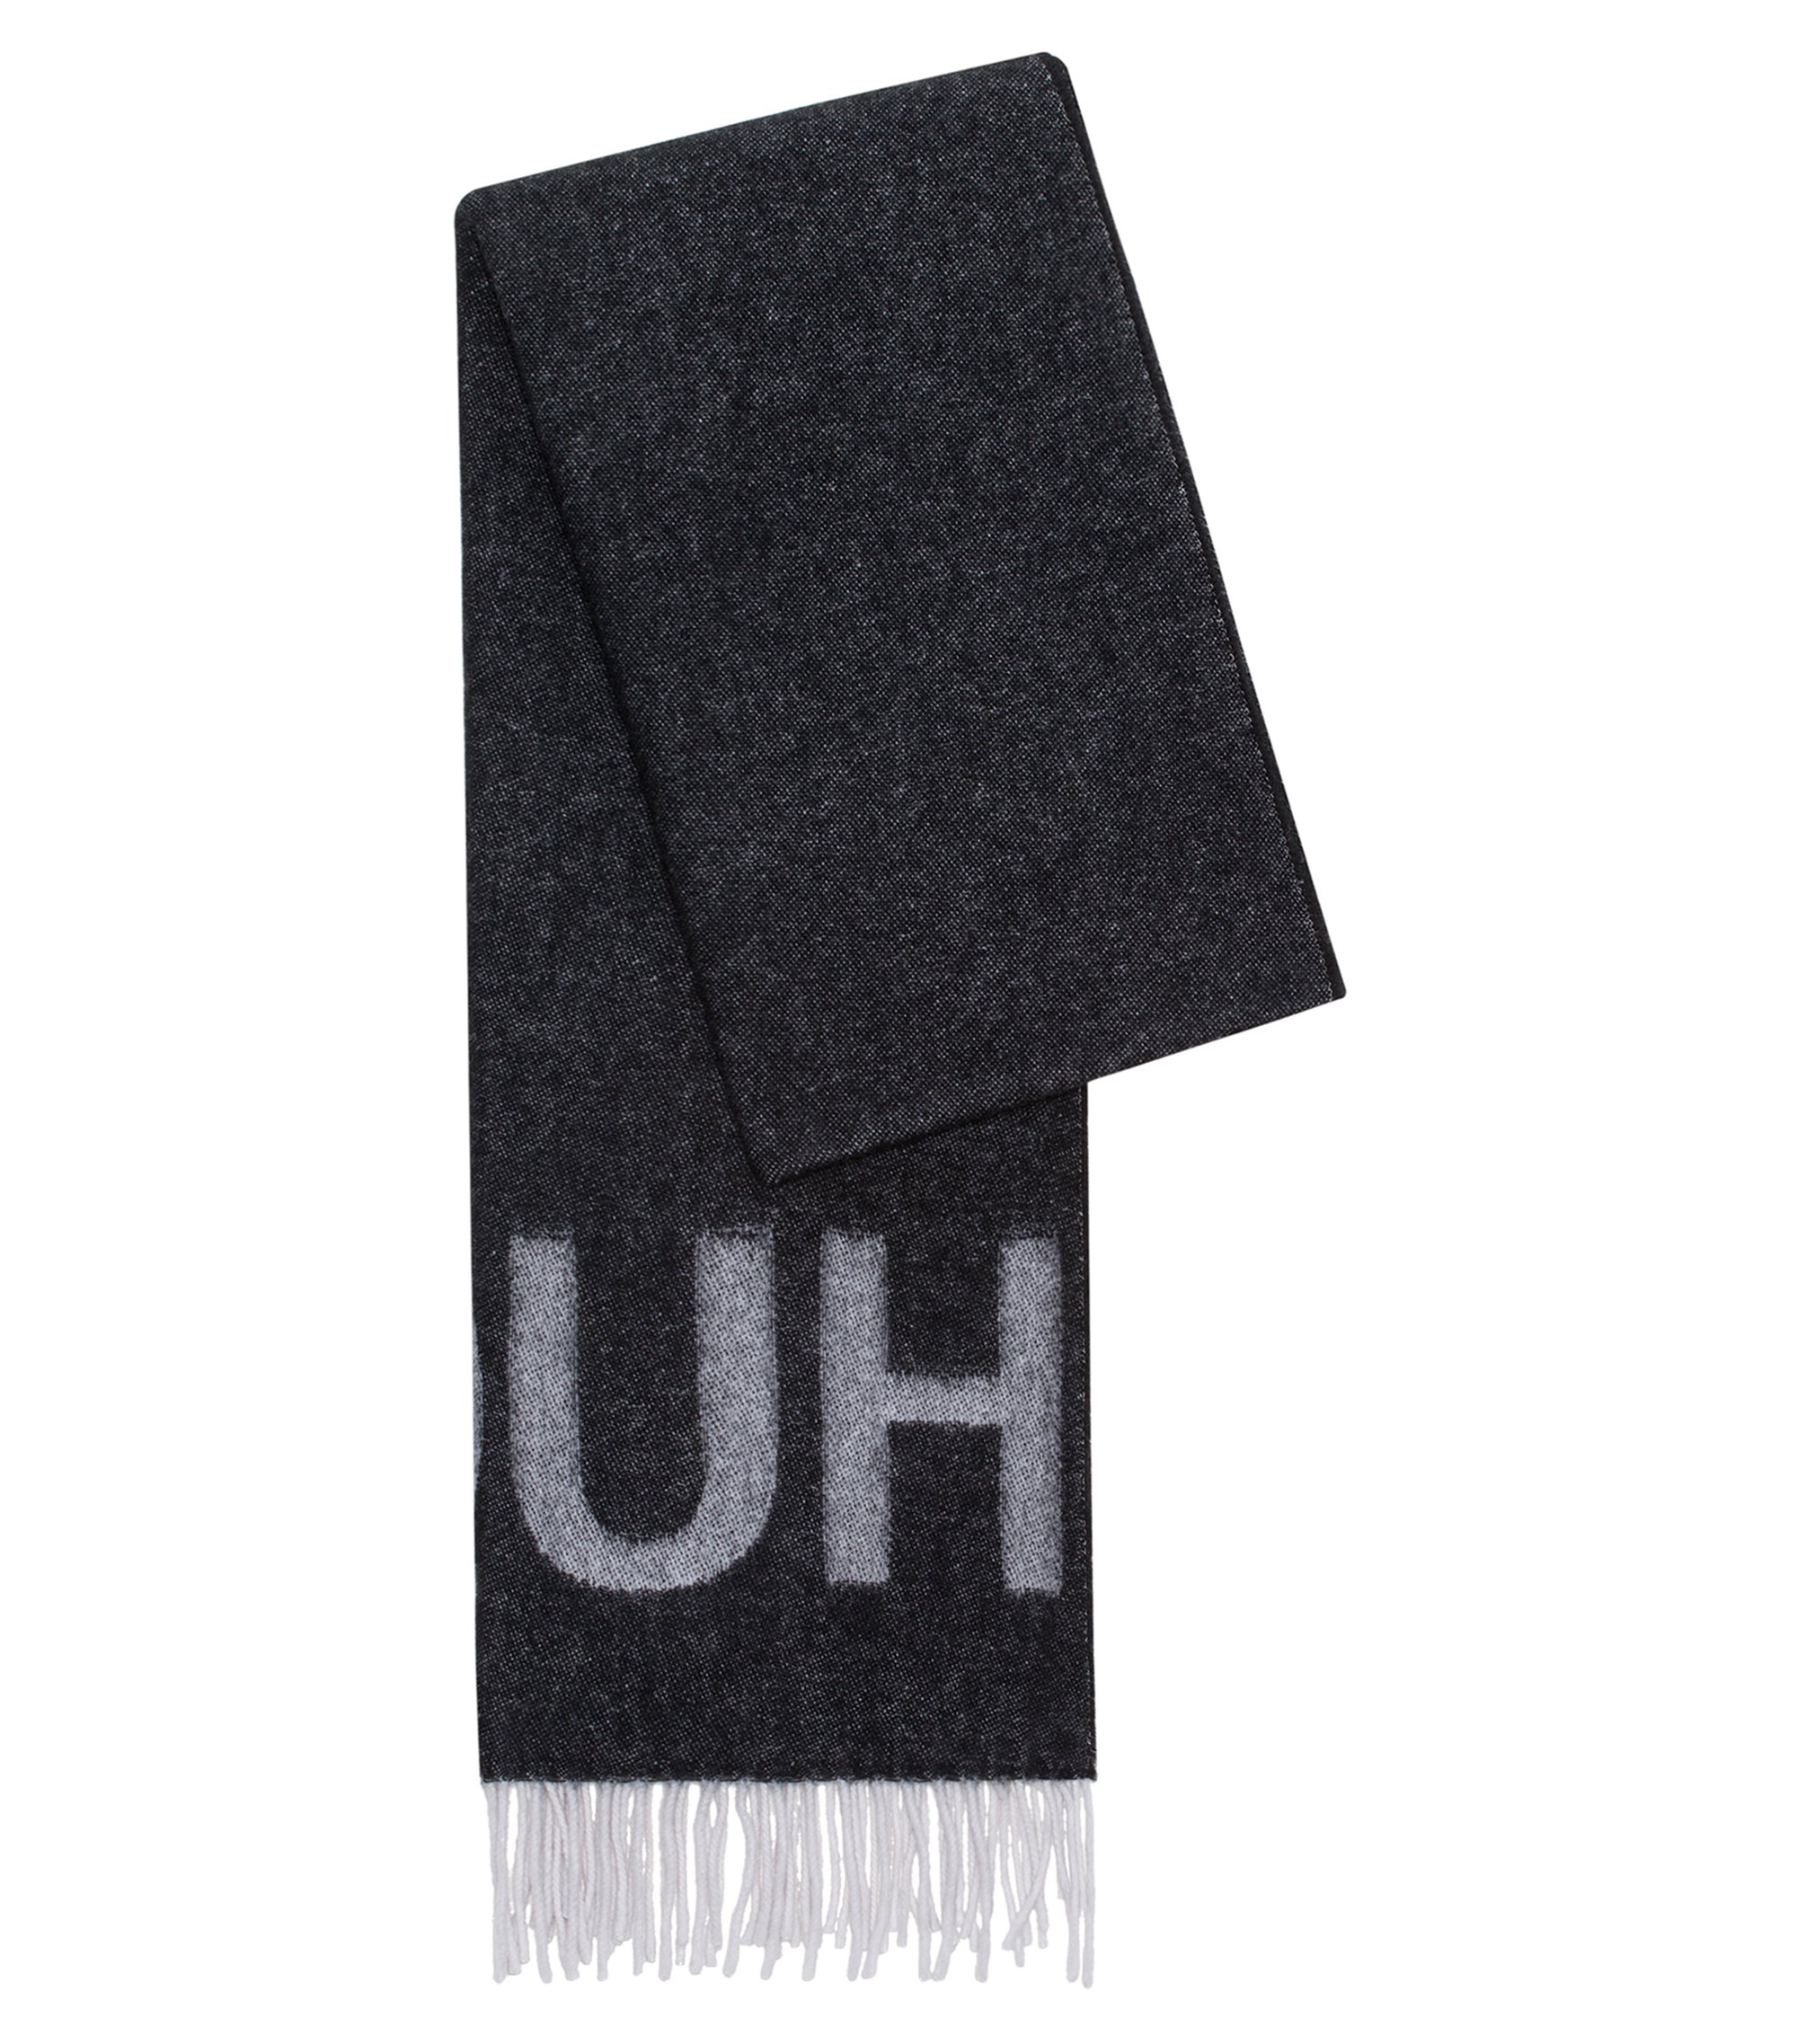 Reverse-logo scarf in a wool blend, Black